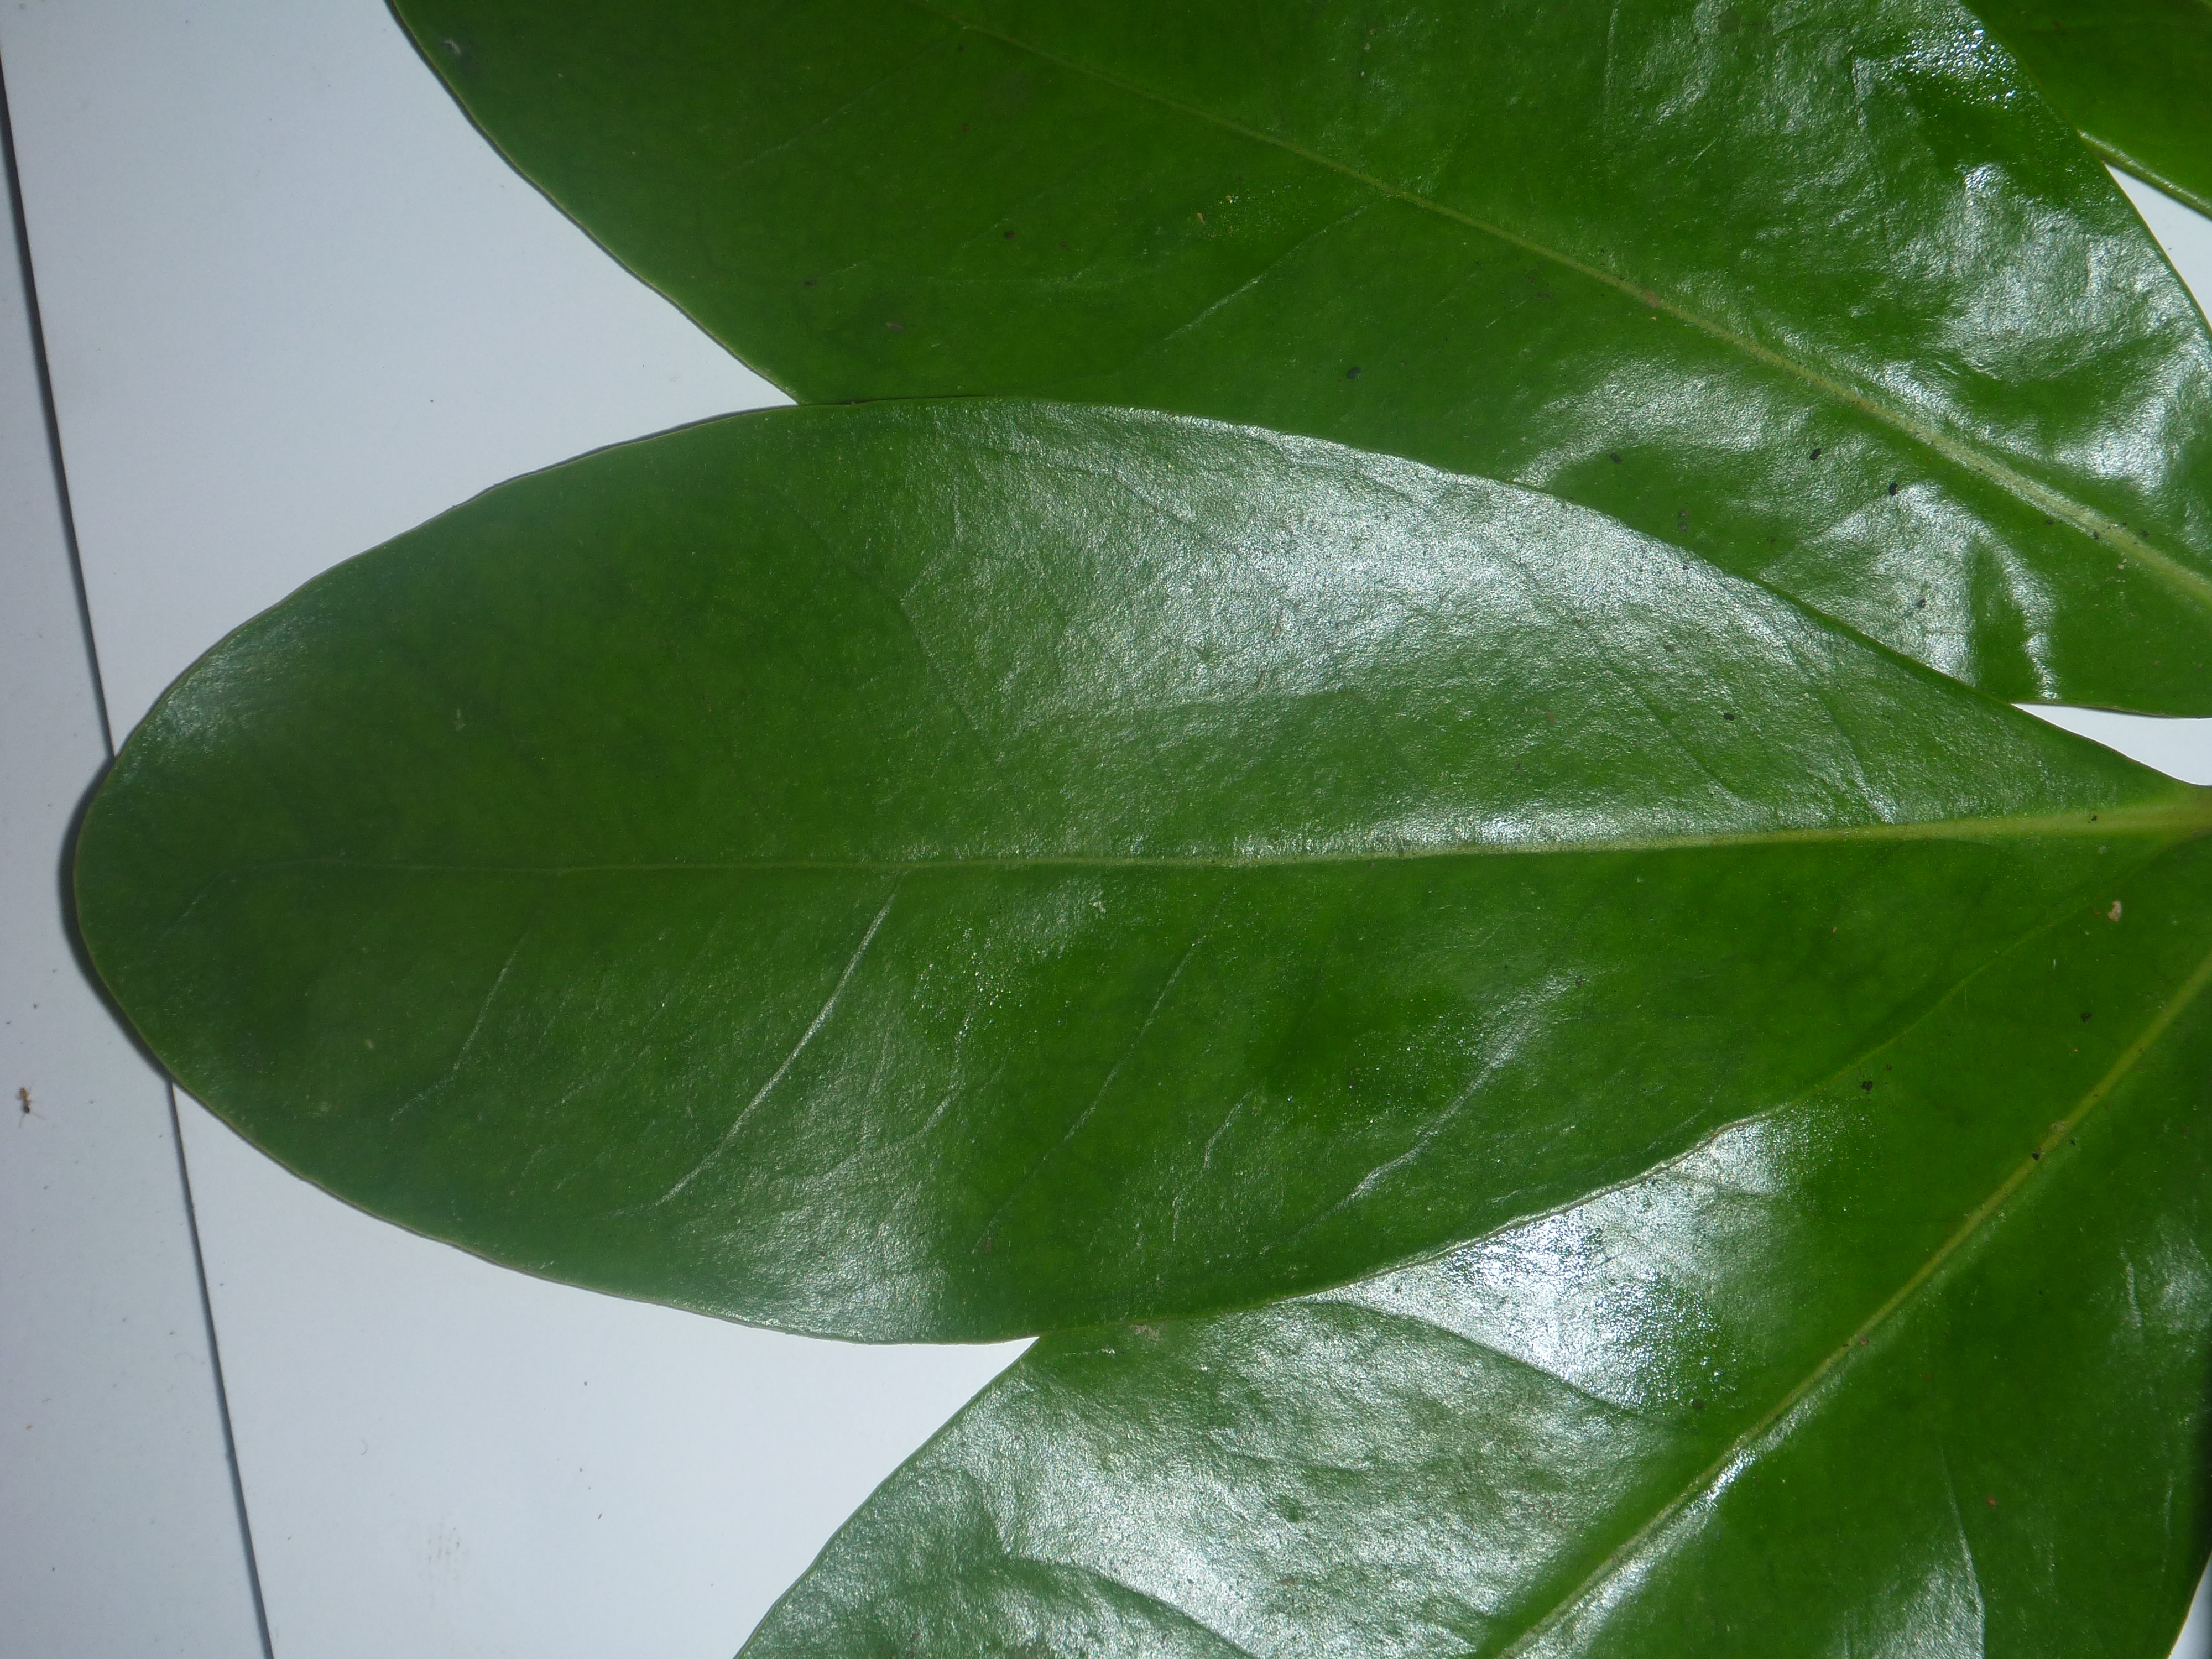 Anyone familiar with this mangrove leaf species?